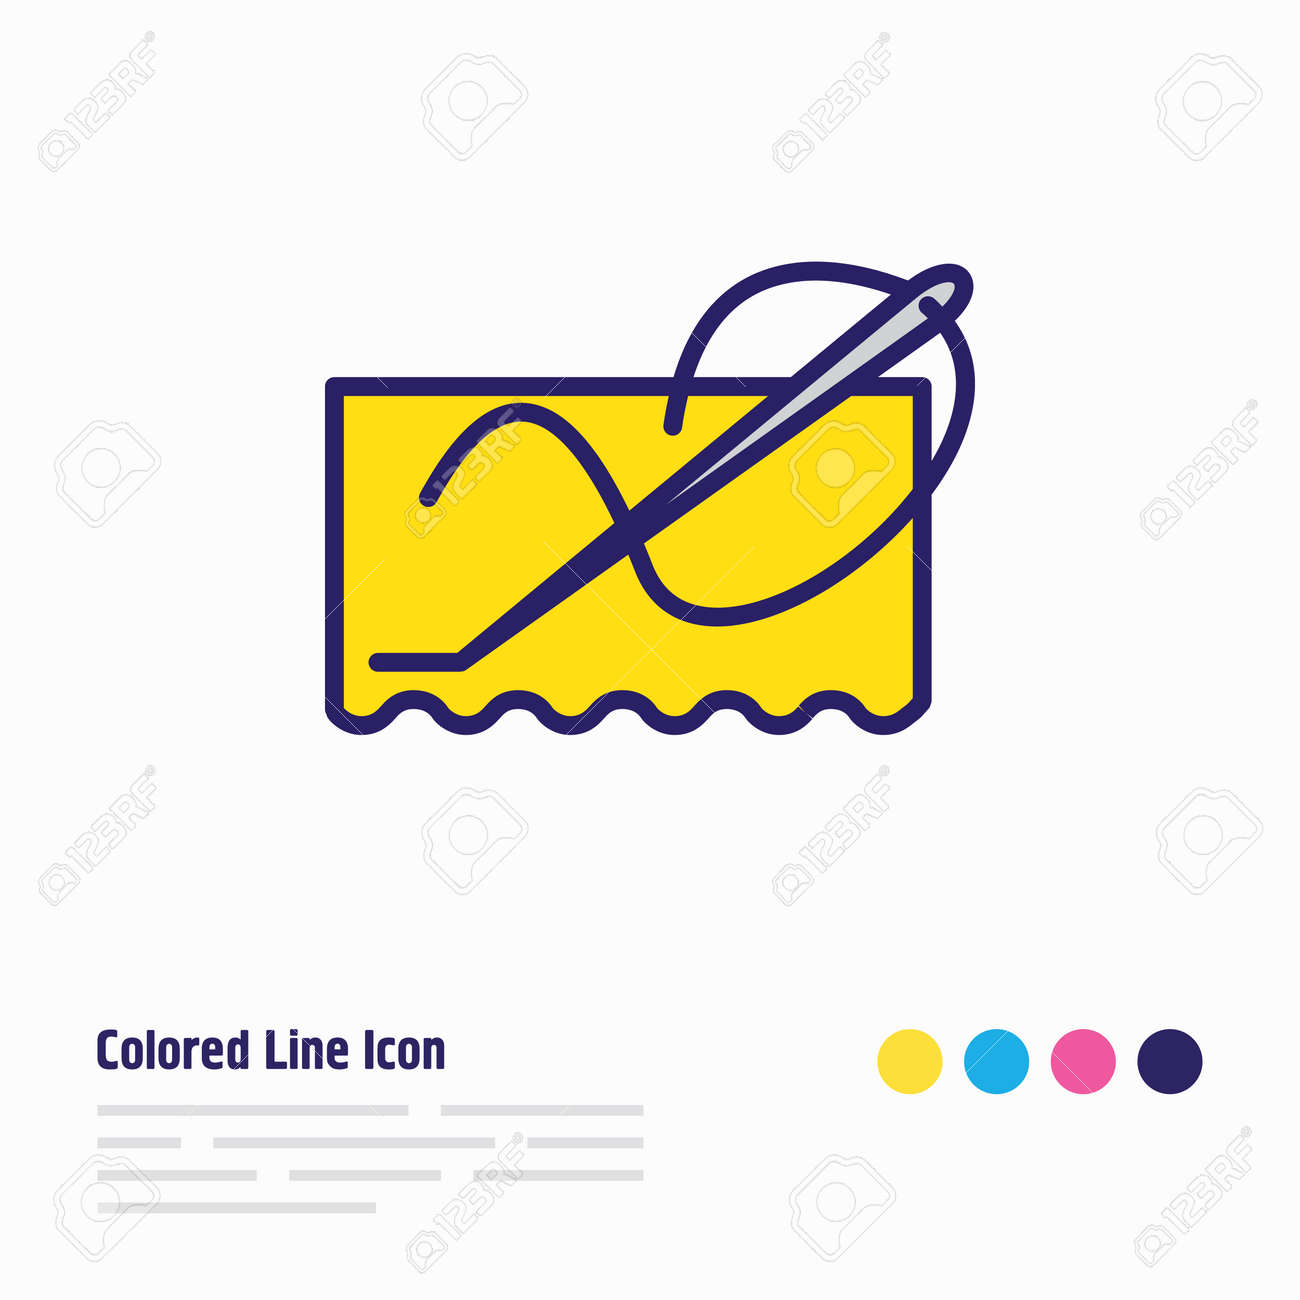 illustration of stitching icon colored line. Beautiful lifestyle element also can be used as needlework icon element. - 157462694